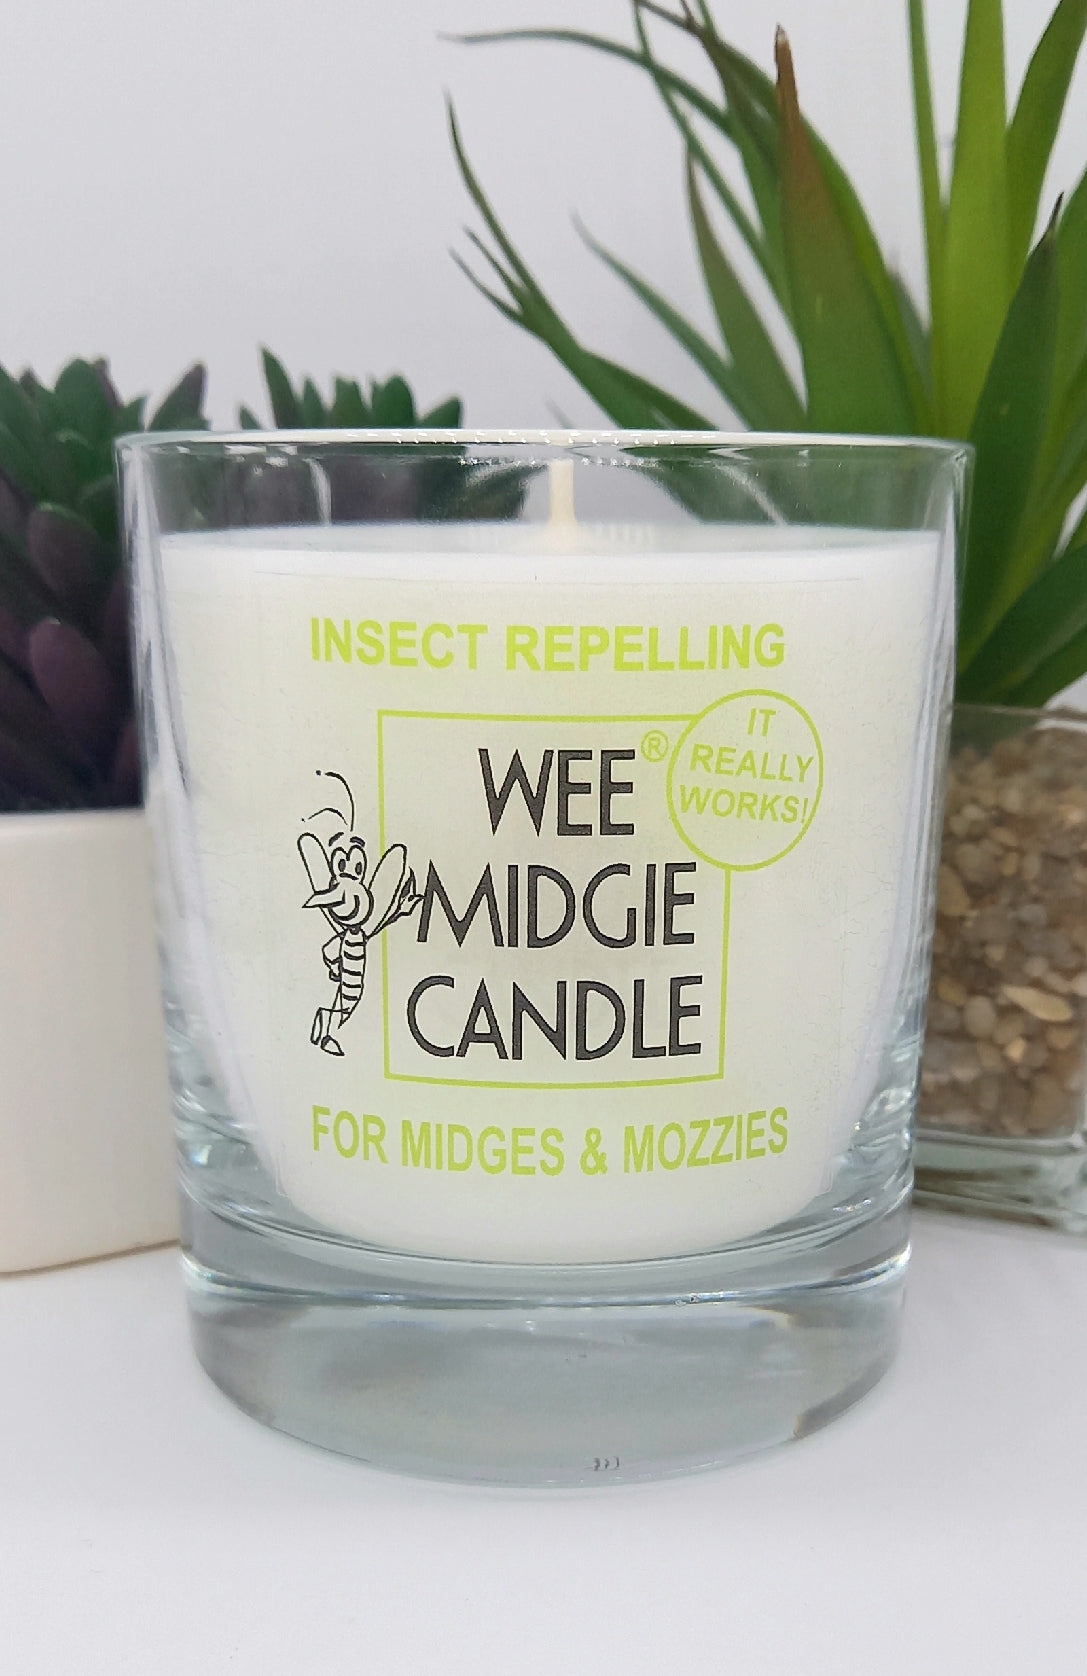 Wee Midgie Insect Repelling Candle Jar